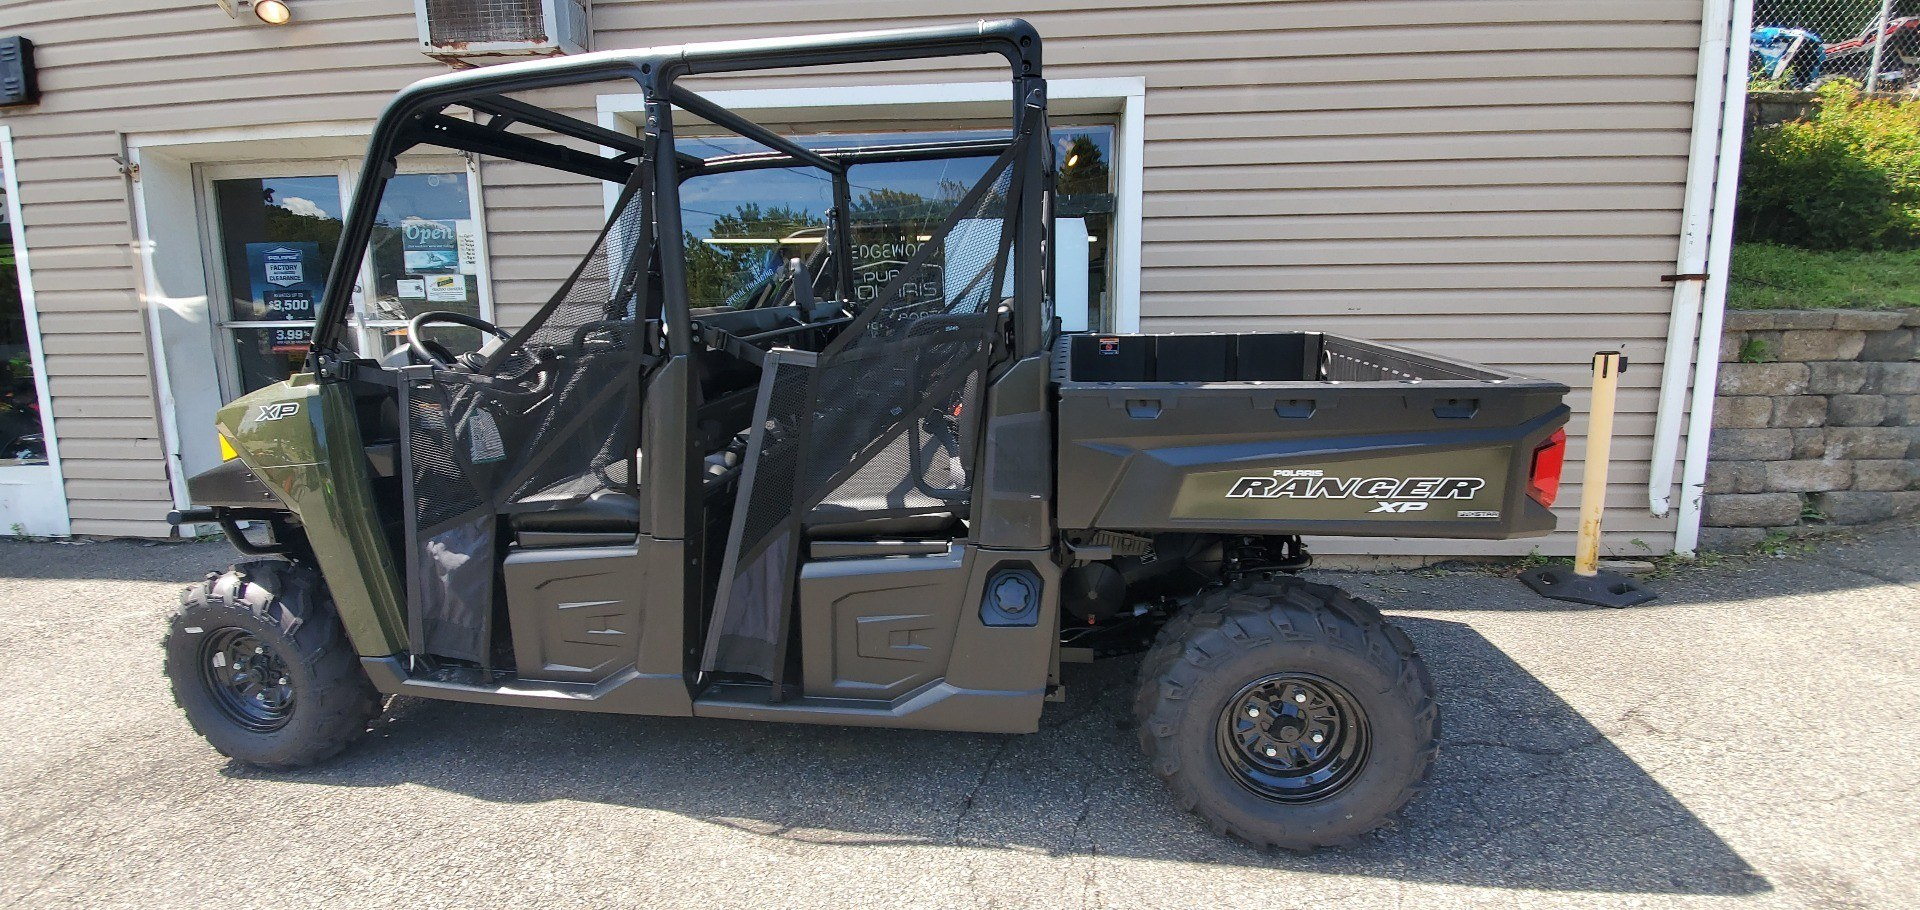 2019 Polaris Ranger Crew XP 900 in Ledgewood, New Jersey - Photo 11